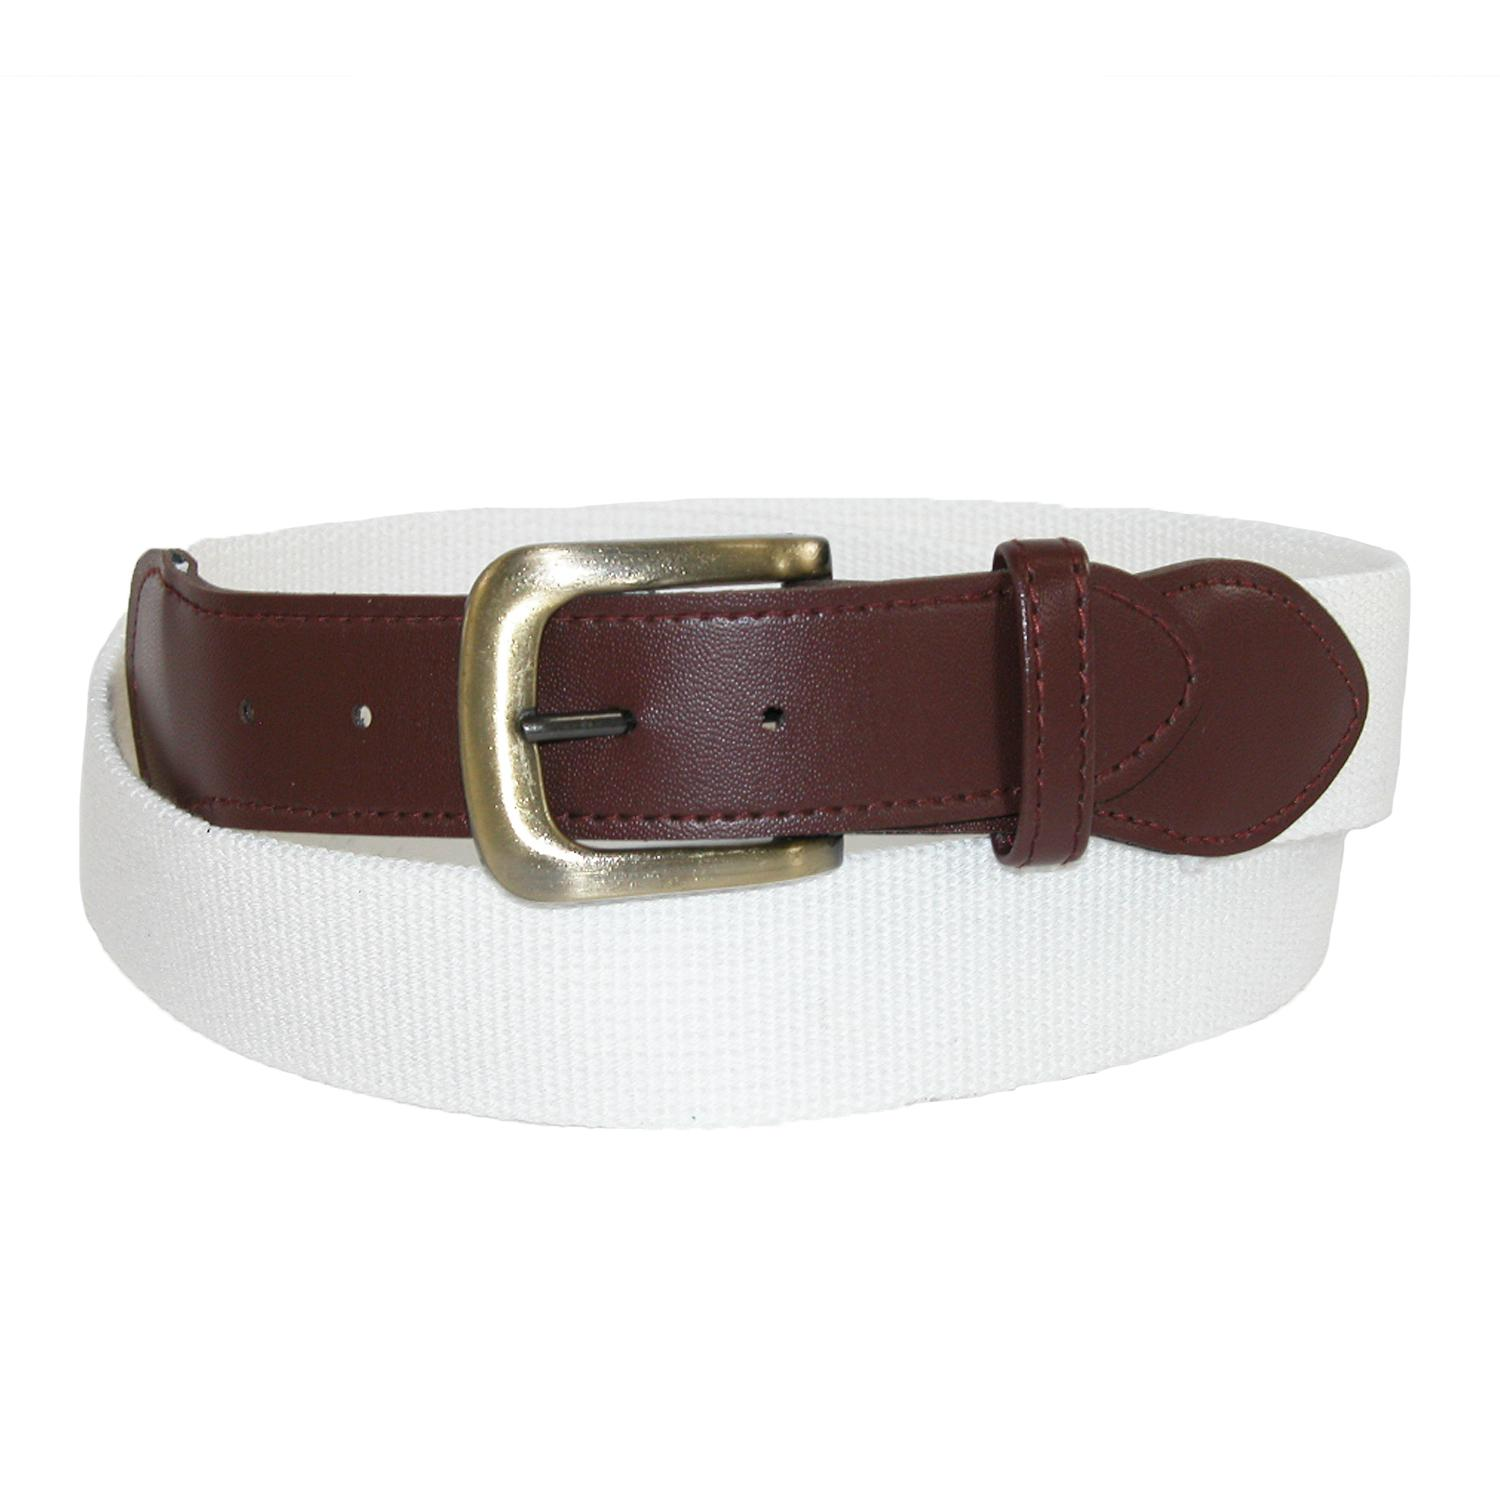 Ctm Mens Fabric With Leather Tabs Casual Golf Belt